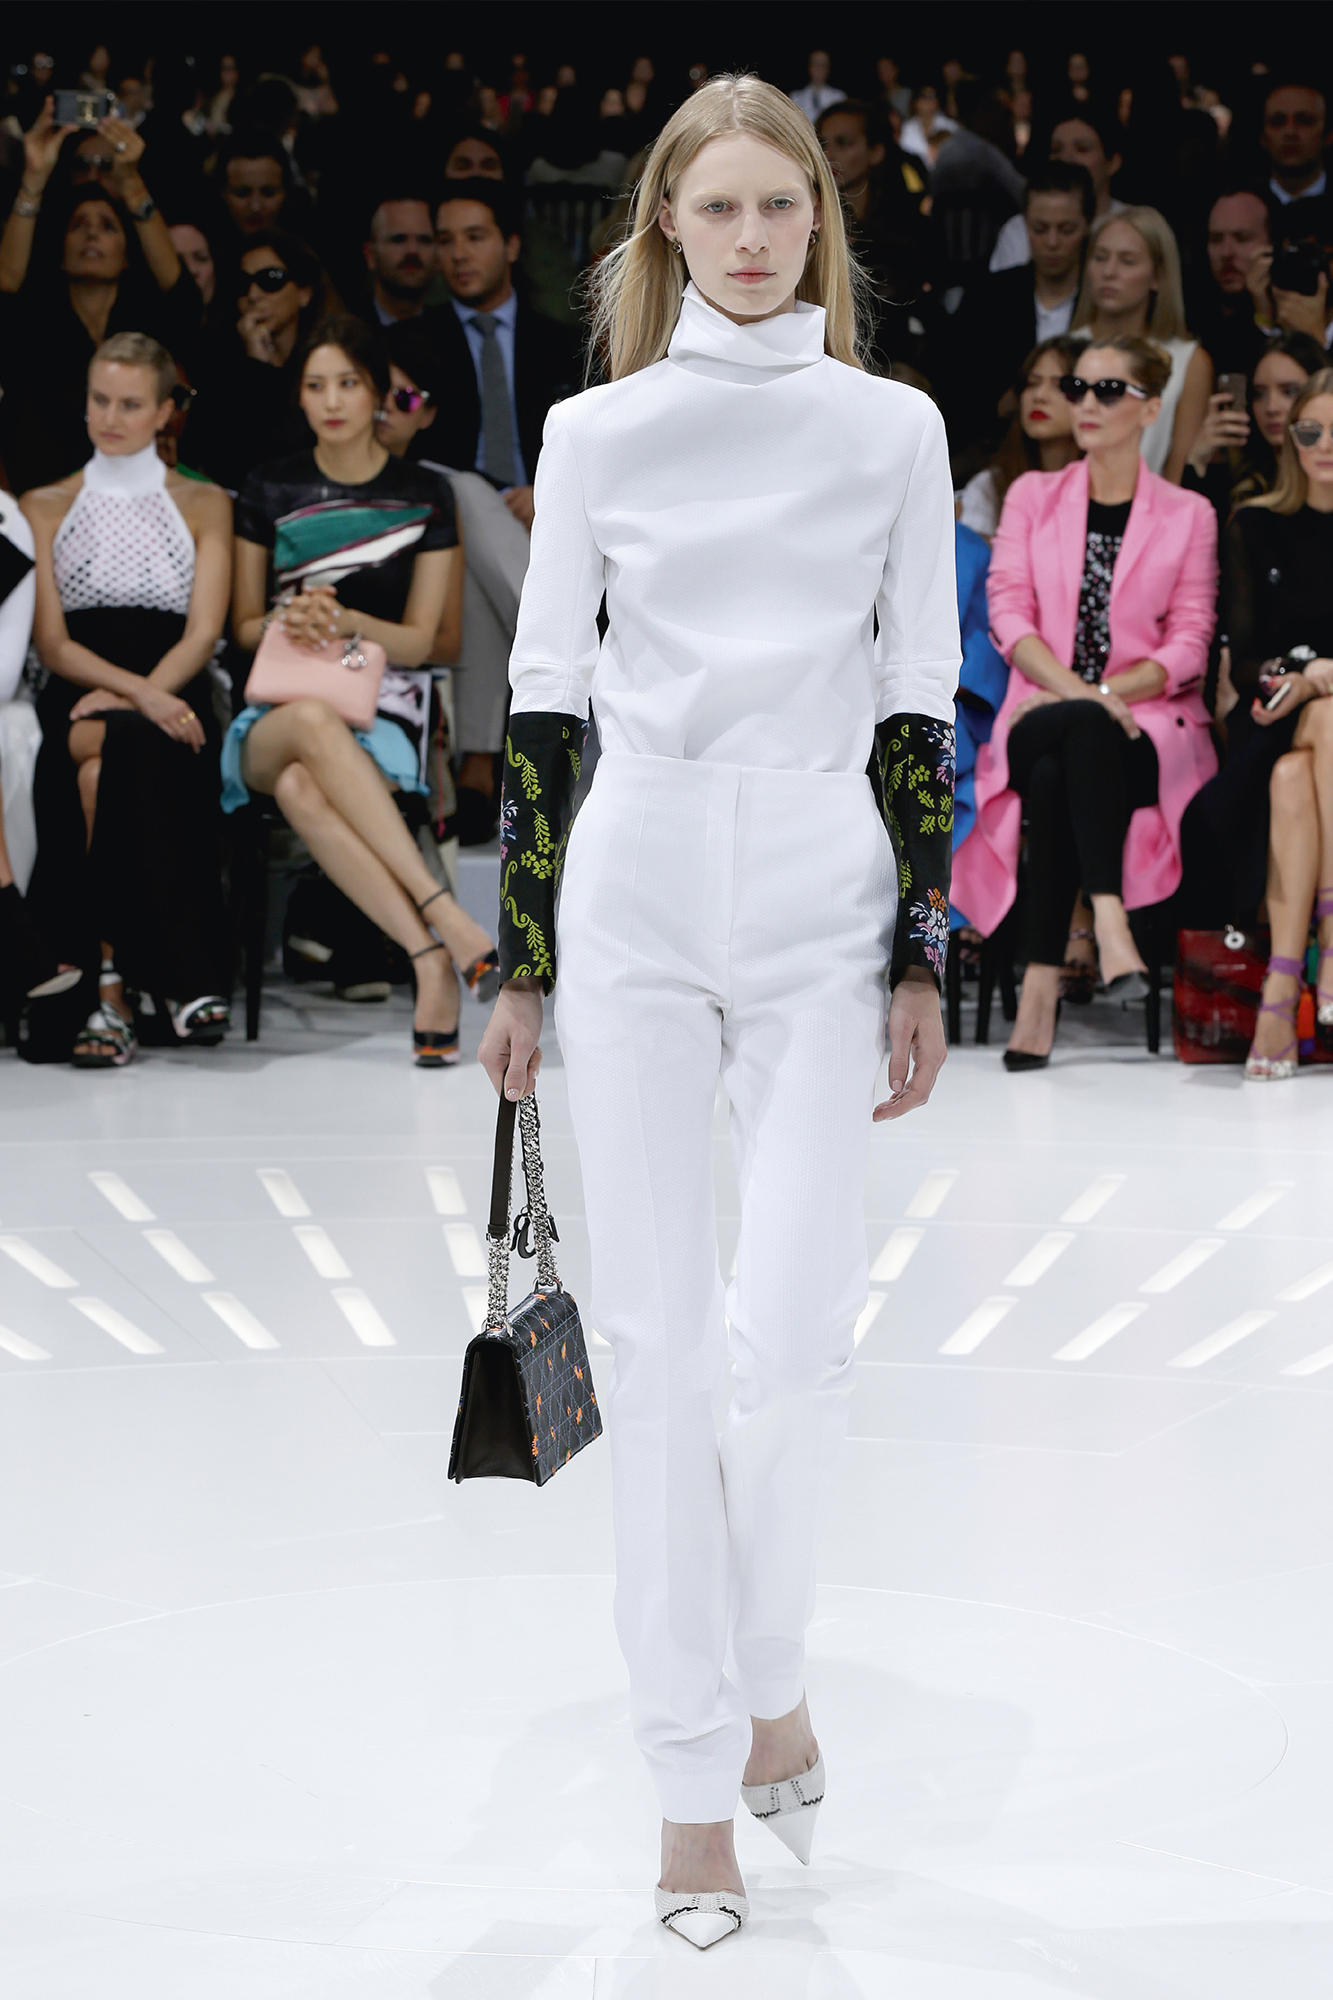 Christian Dior Haute Couture Spring-Summer Ready To Wear Dresses & Accessories Collection 2015-16 (5)